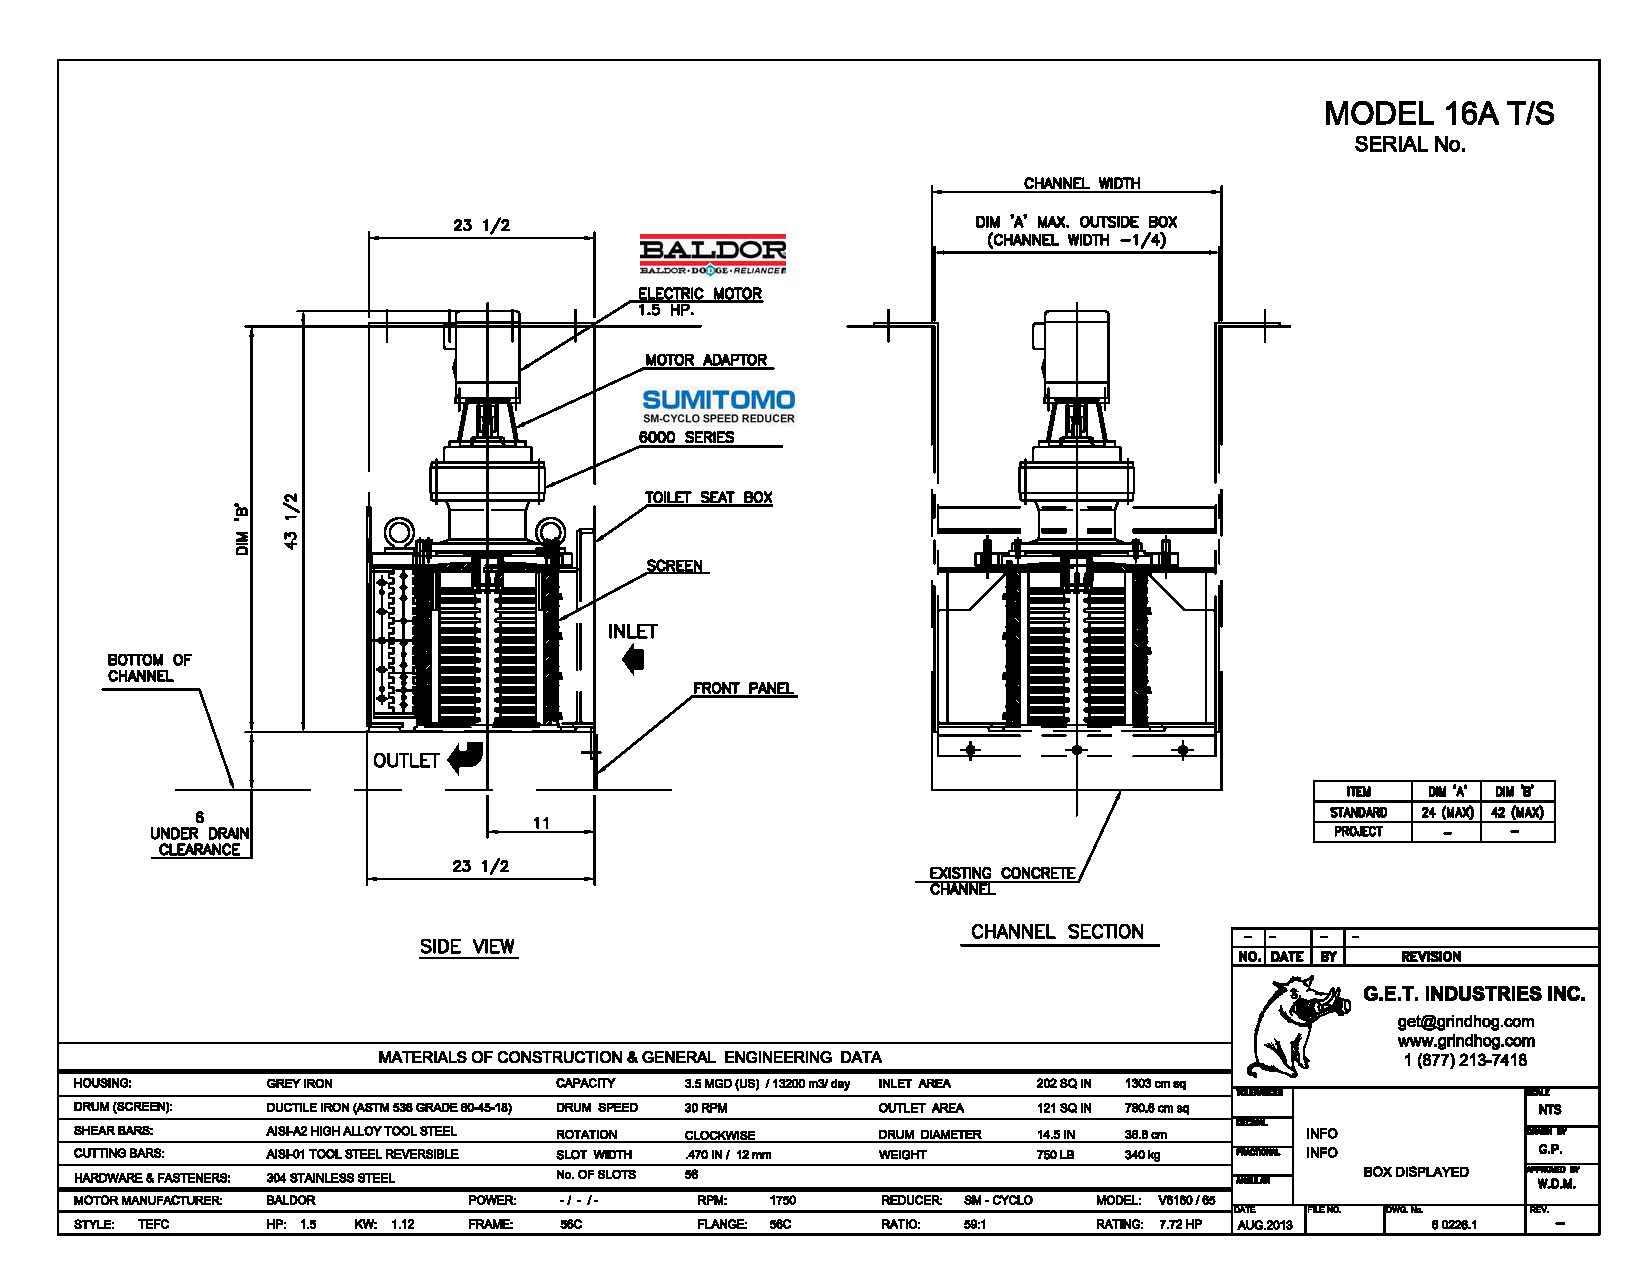 data drawing for Model 16A T/S